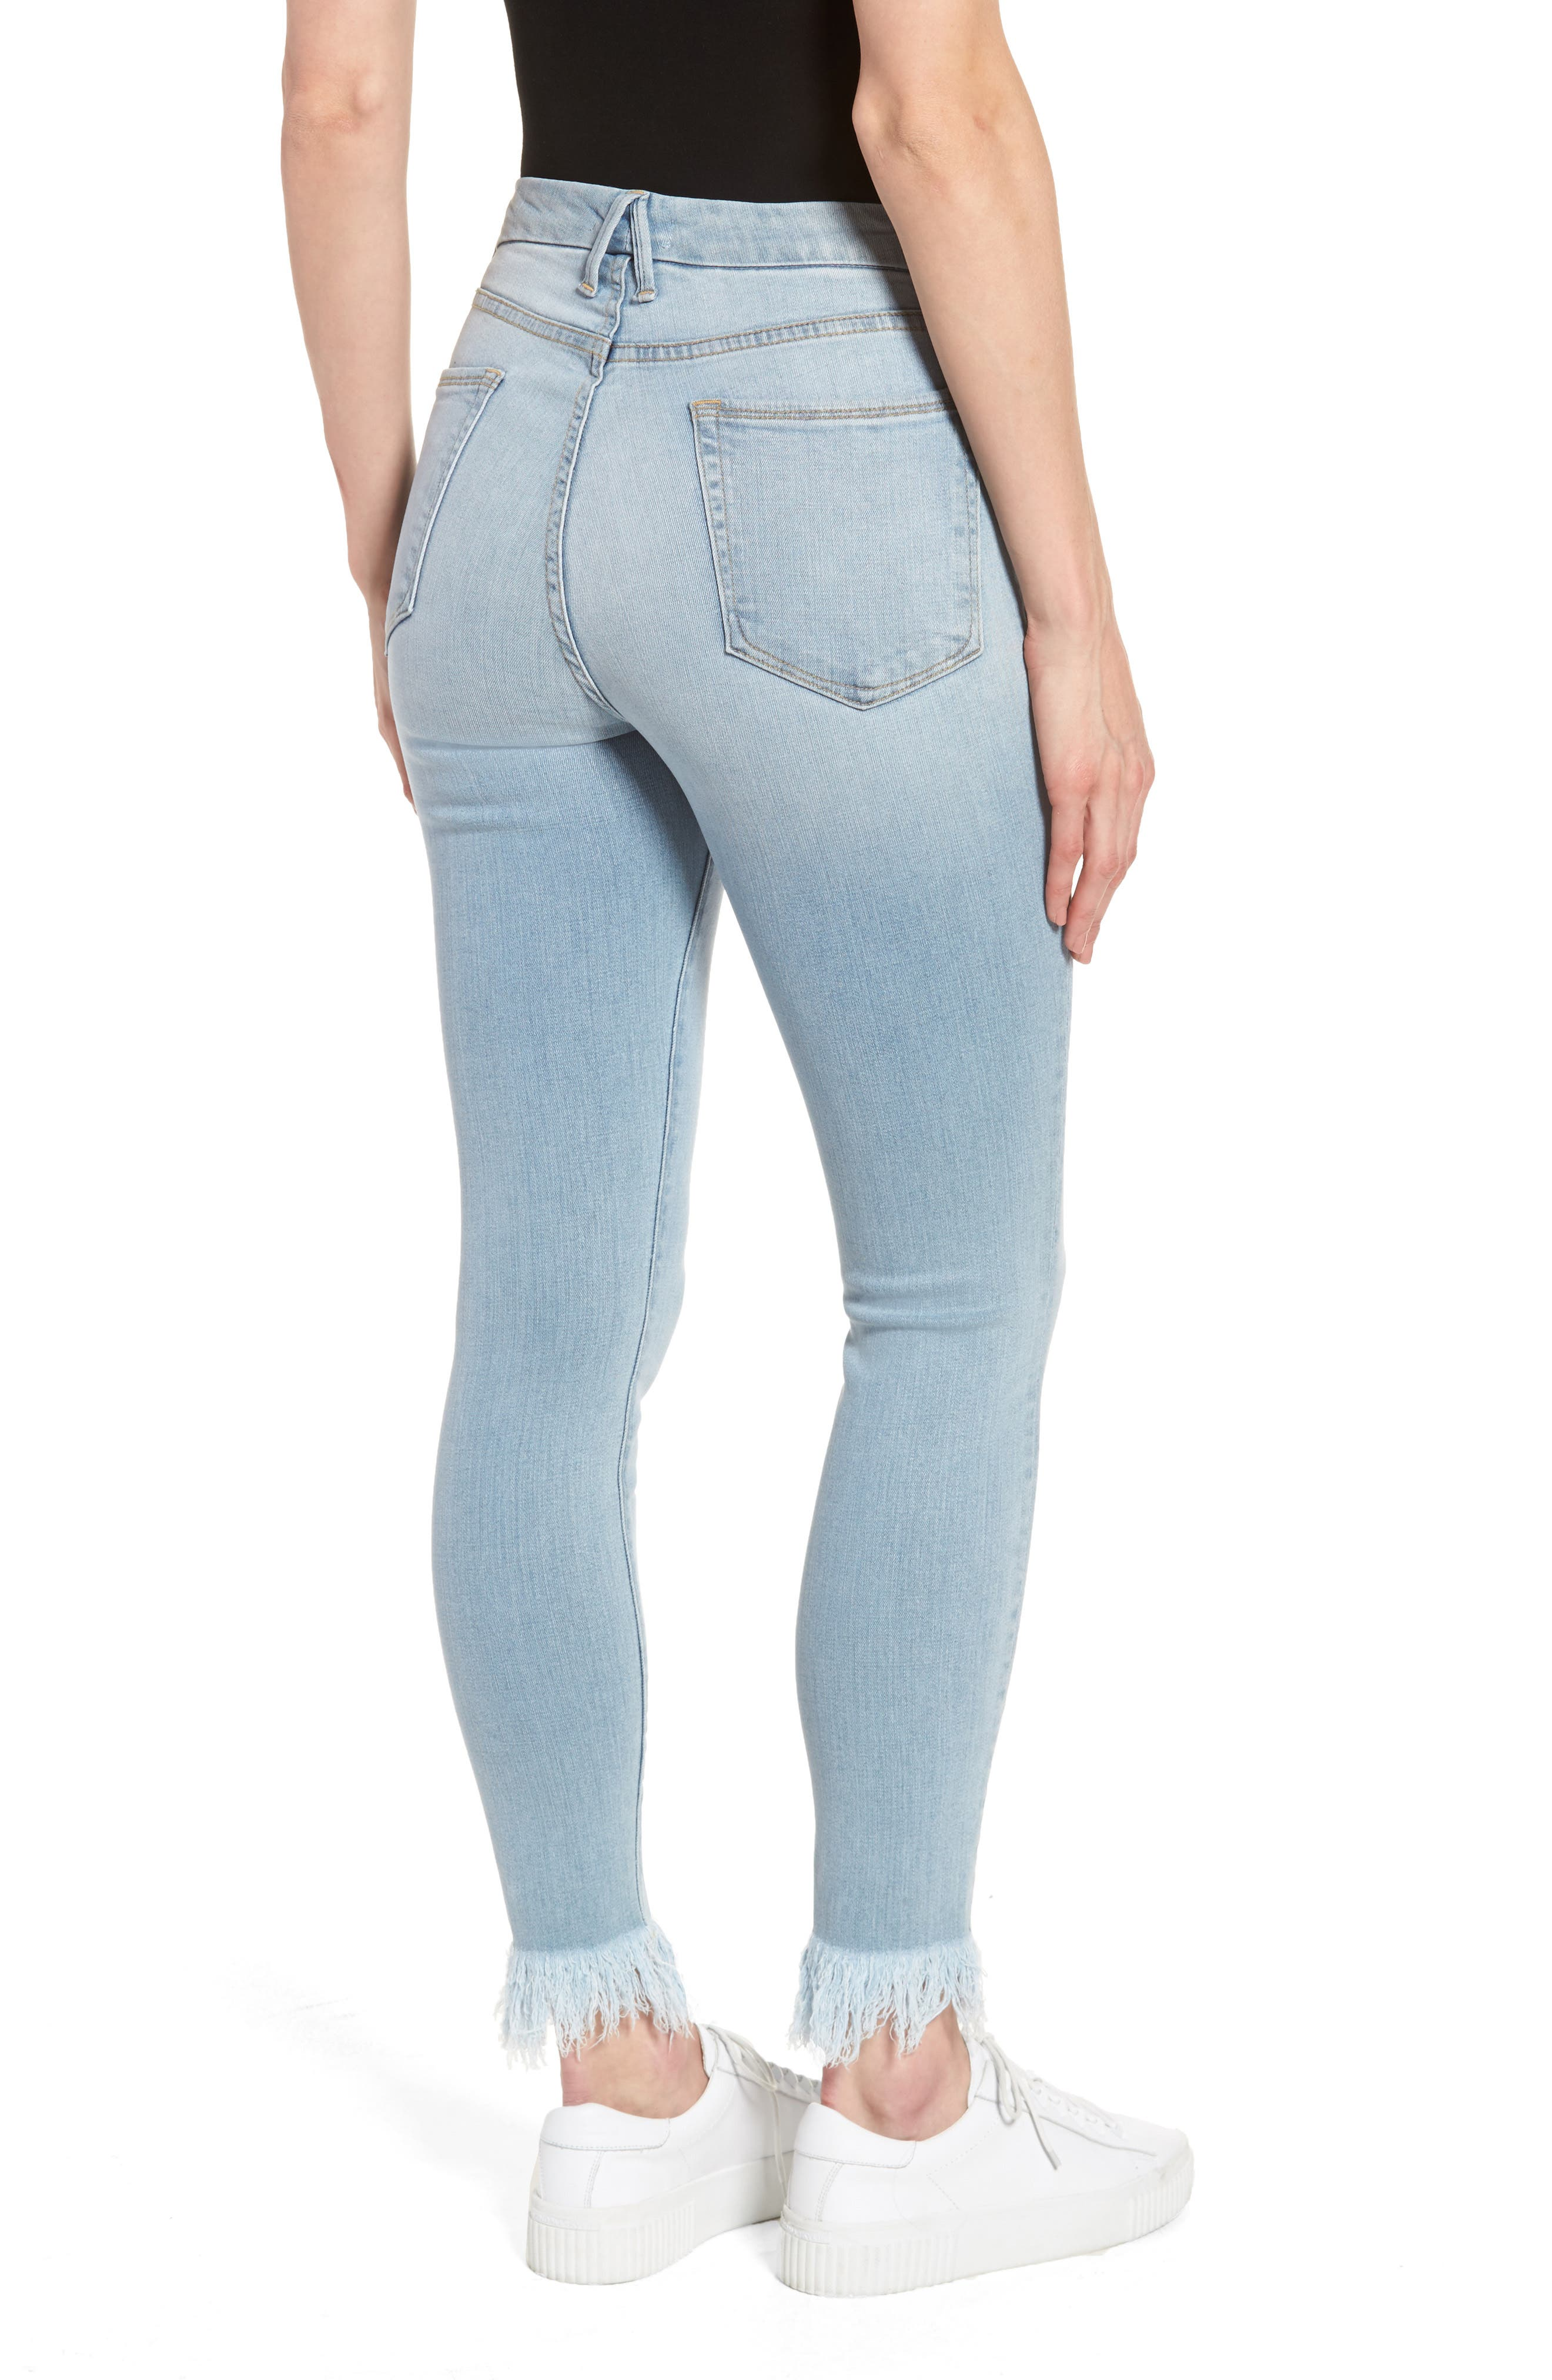 Alternate Image 2  - Good American Good Waist High Waist Frayed Ankle Skinny Jeans (Blue 054) (Extended Sizes)